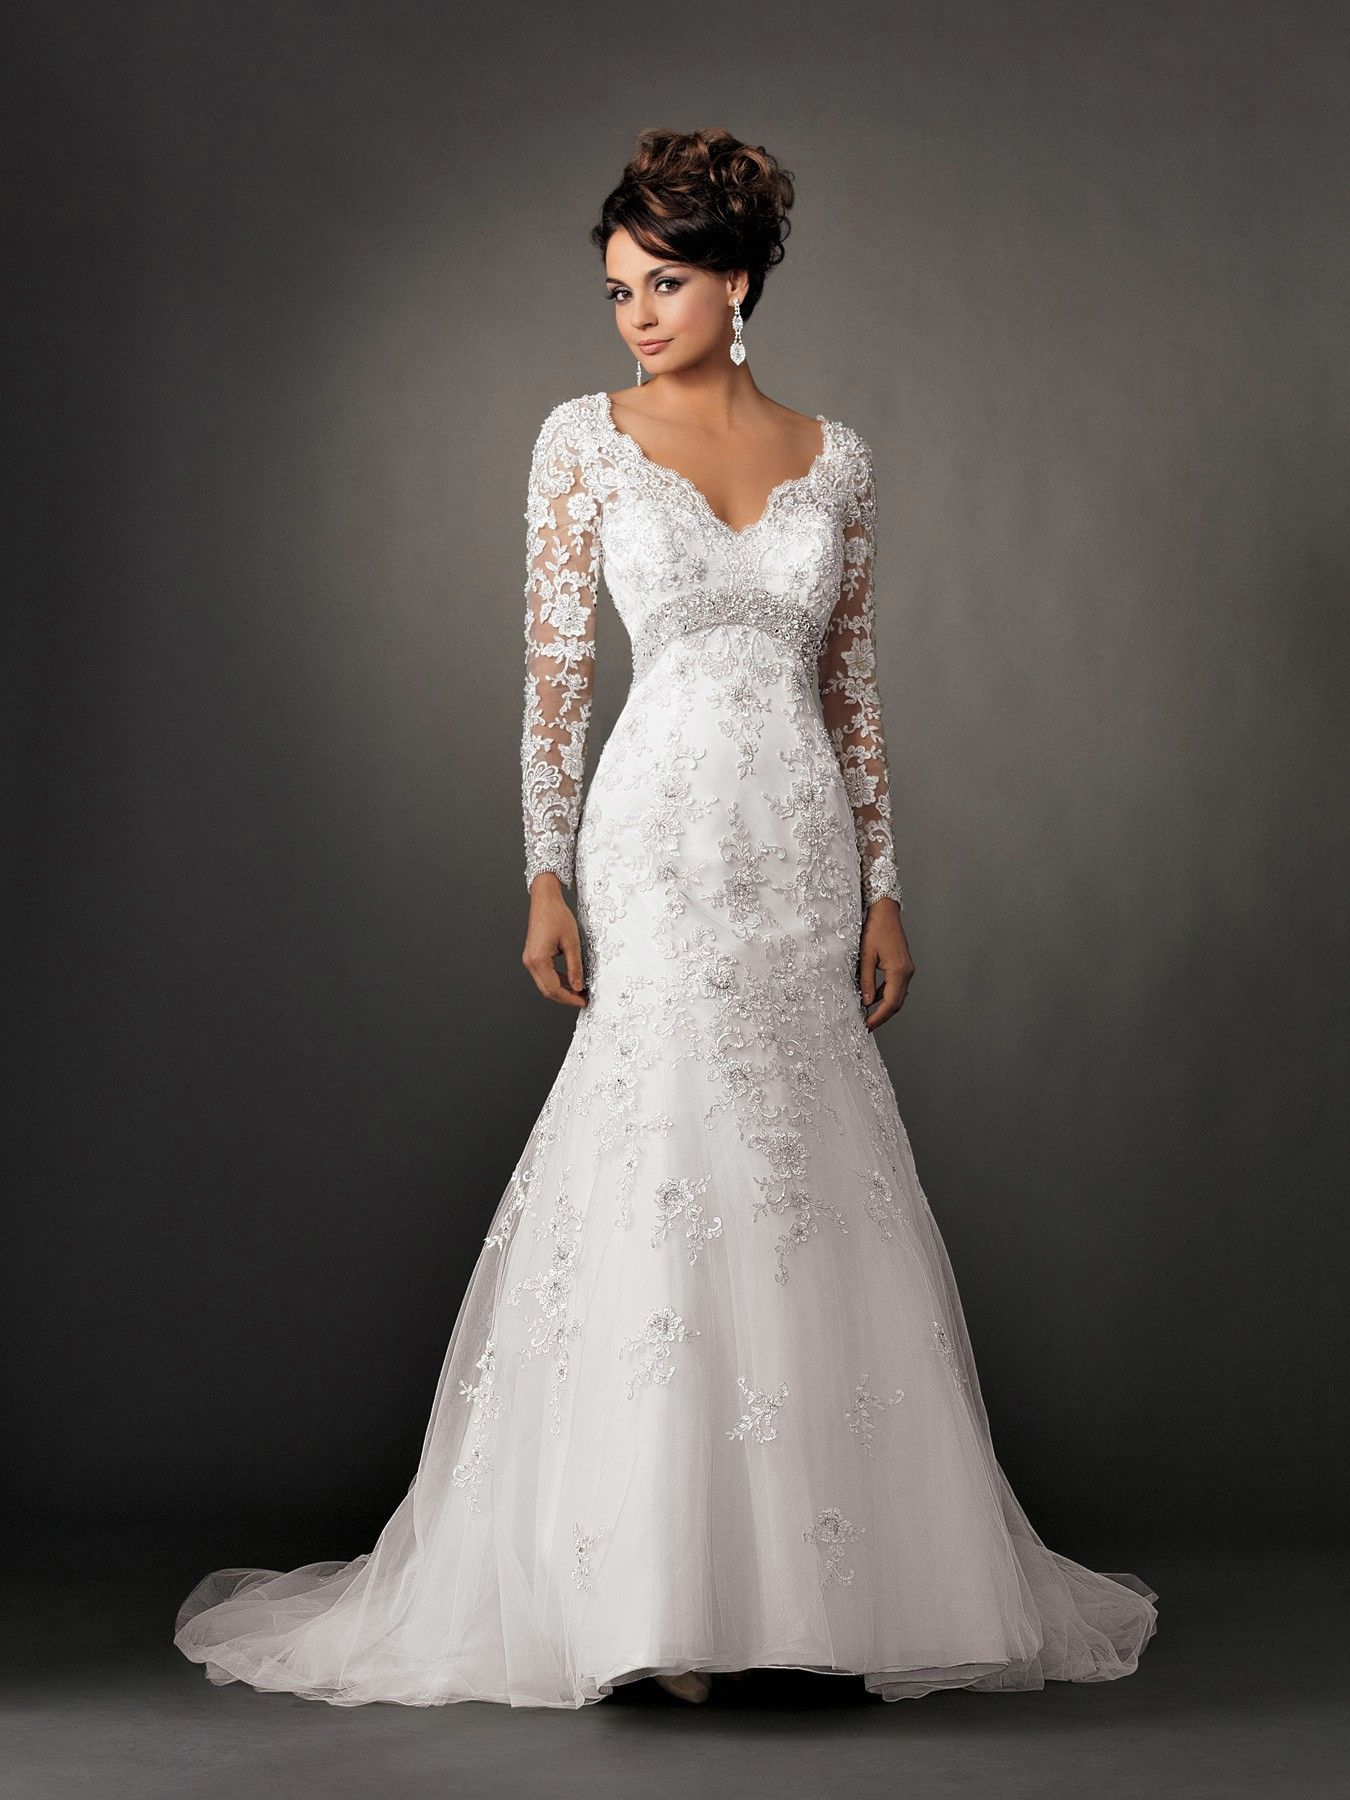 Jordan Reflections Wedding Dresses - Style M208 [M208] - $1,798.00 ...